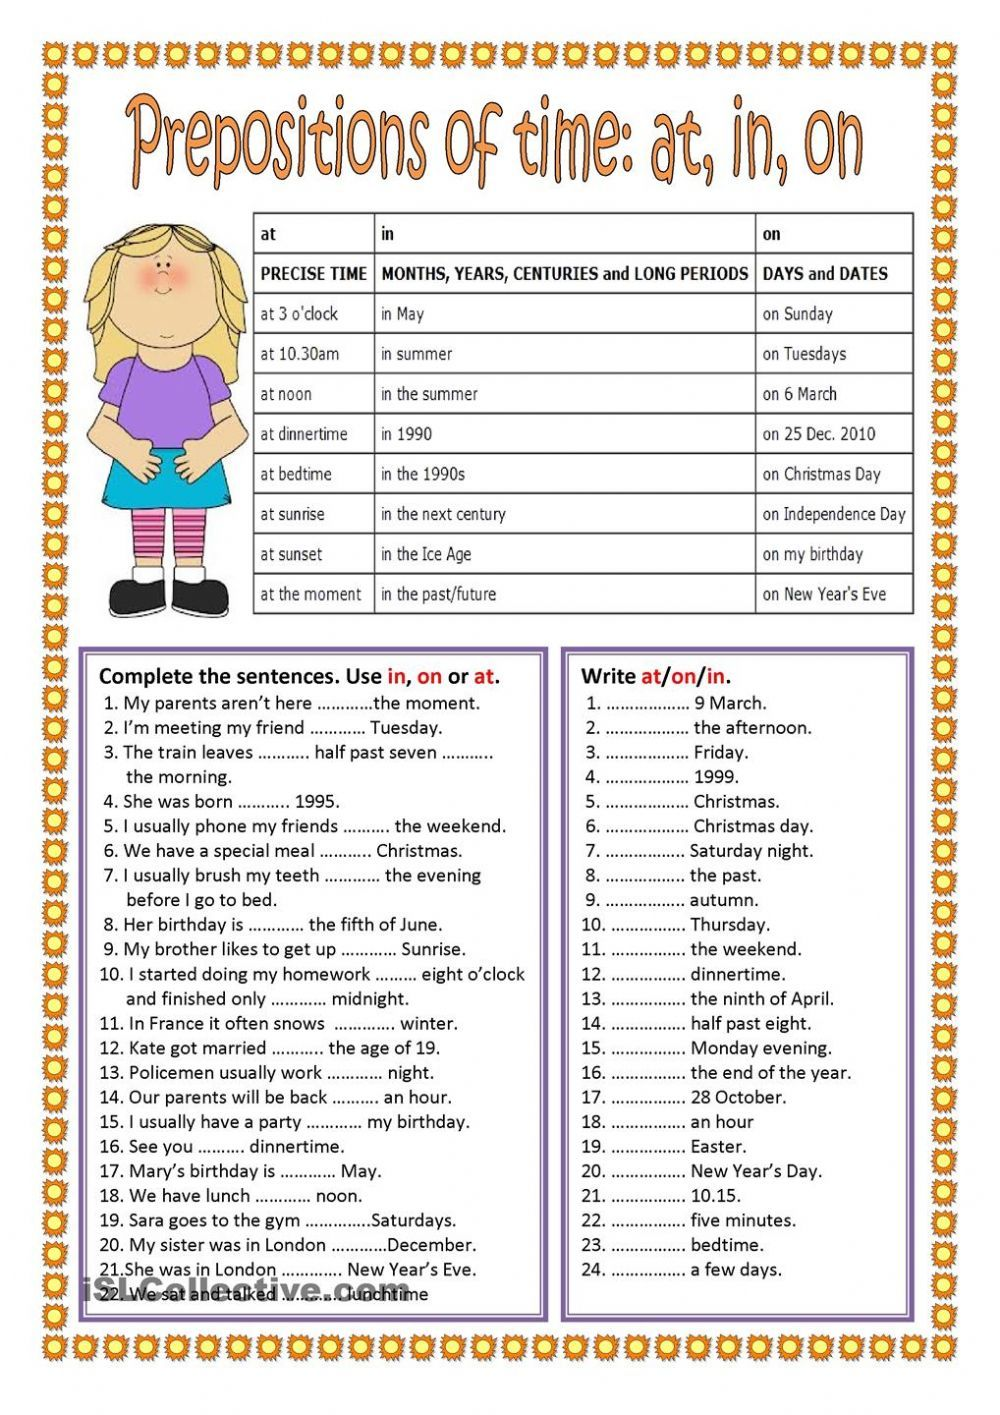 https://dubaikhalifas.com/prepositions-of-time-at-in-on-interactive-worksheet-in-2020-prepositions-english-grammar/ [ 91 x 1415 Pixel ]